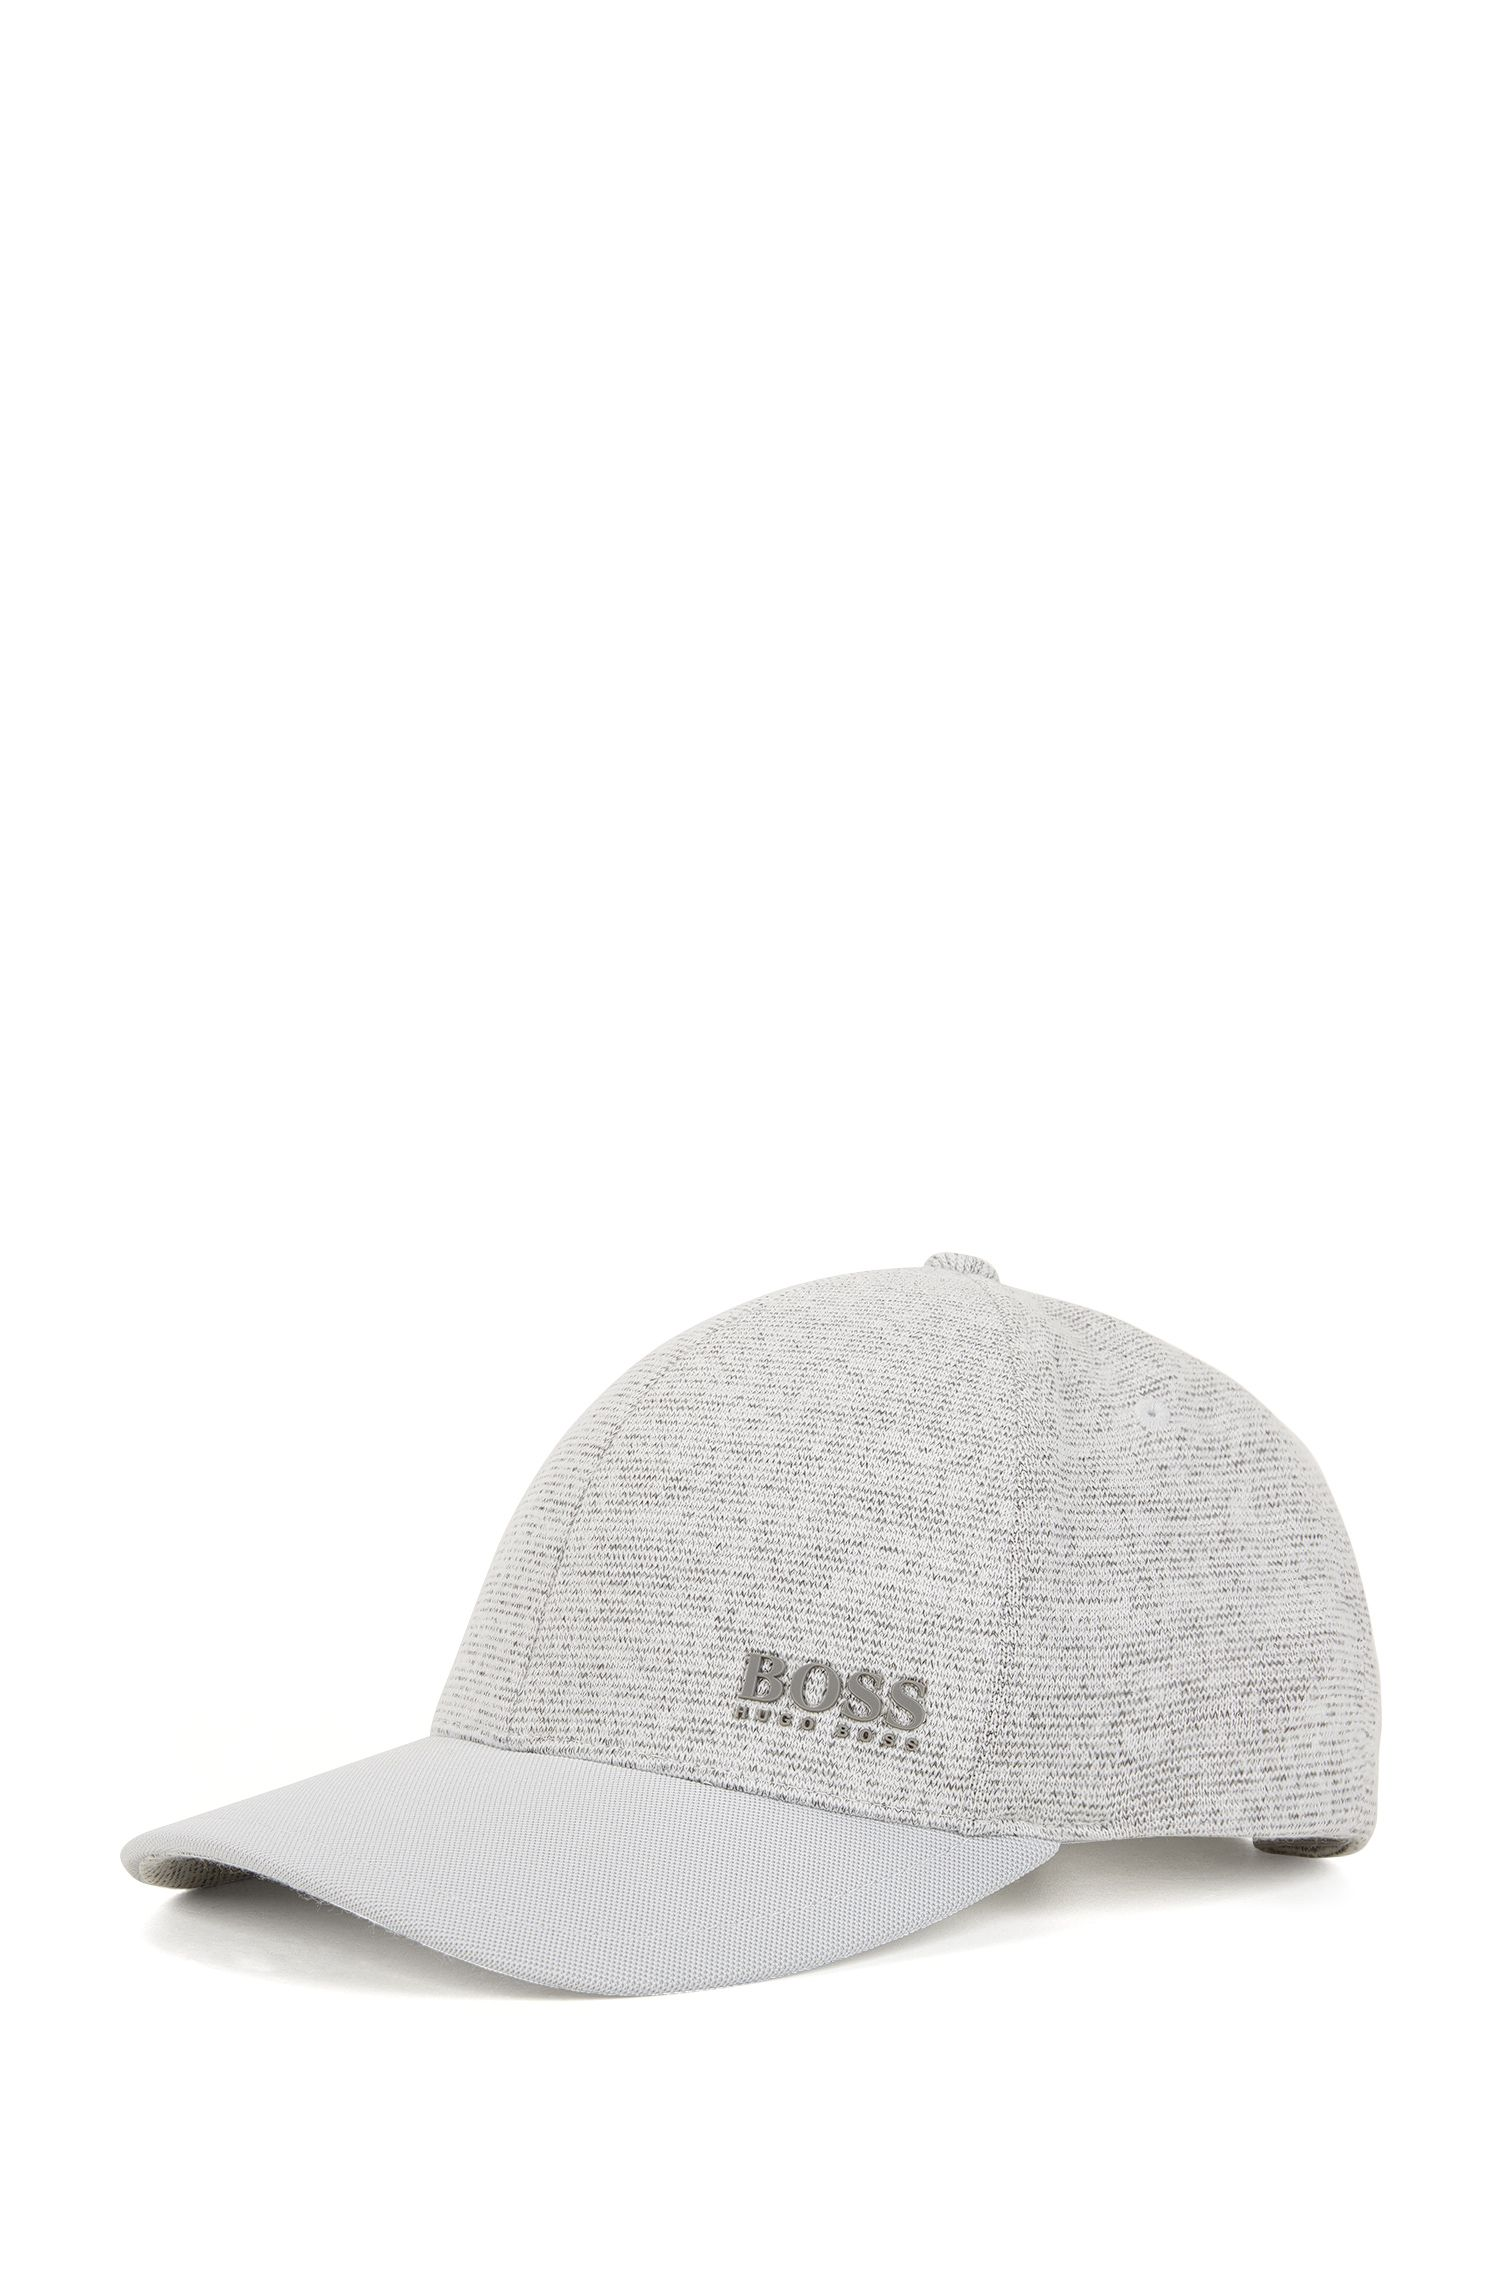 Hybrid baseball cap with technical piqué